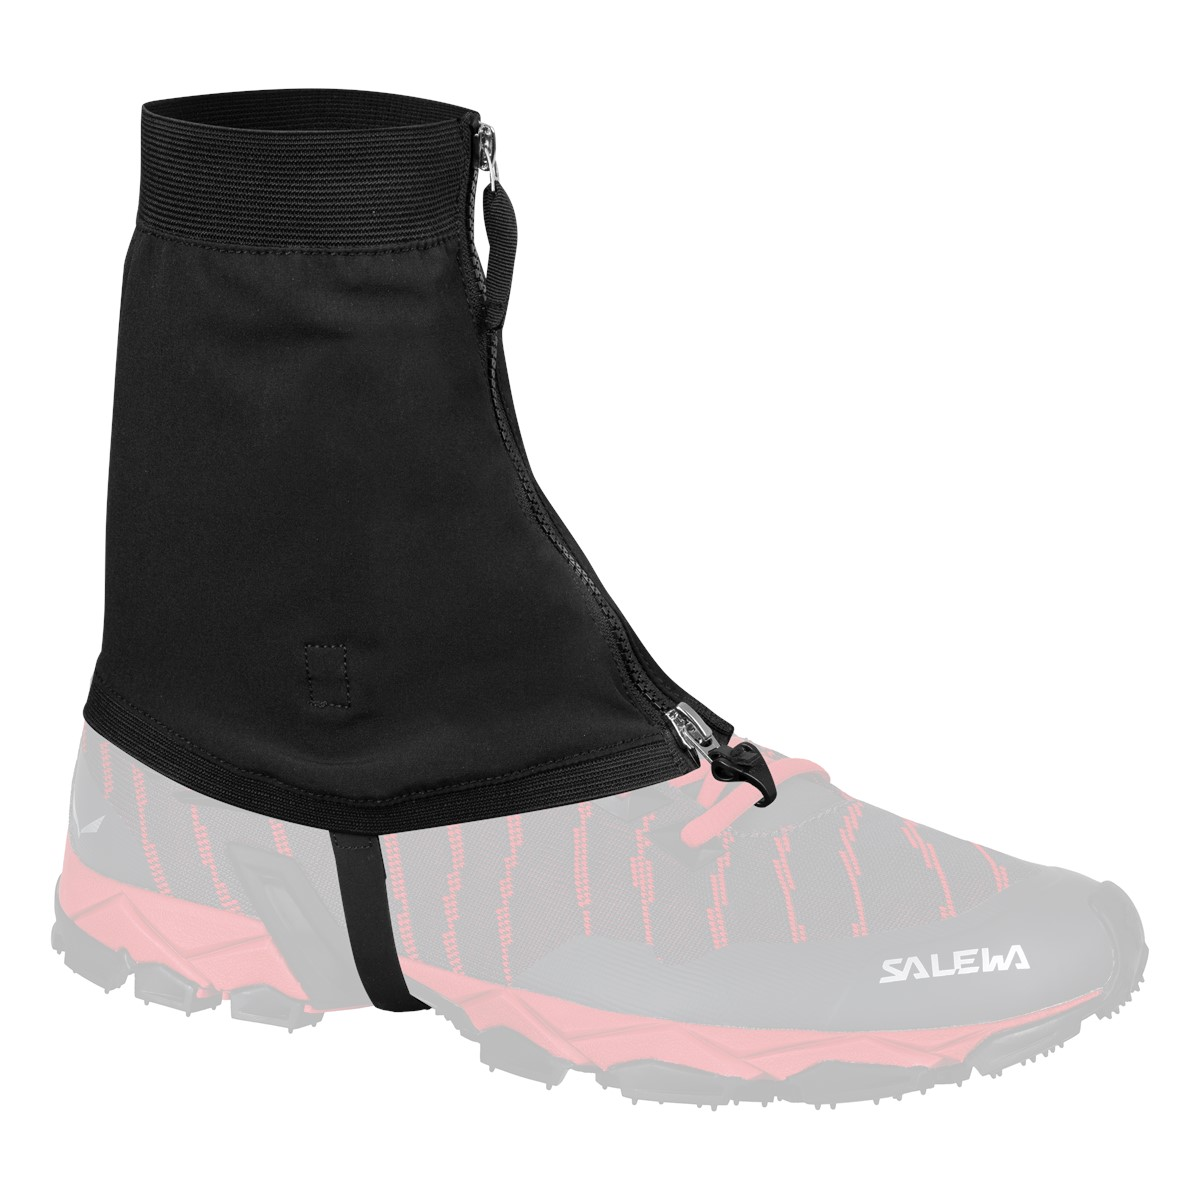 Salewa ALPINE SPEED STRETCH GAITER-black-UNI - Gr. UNI